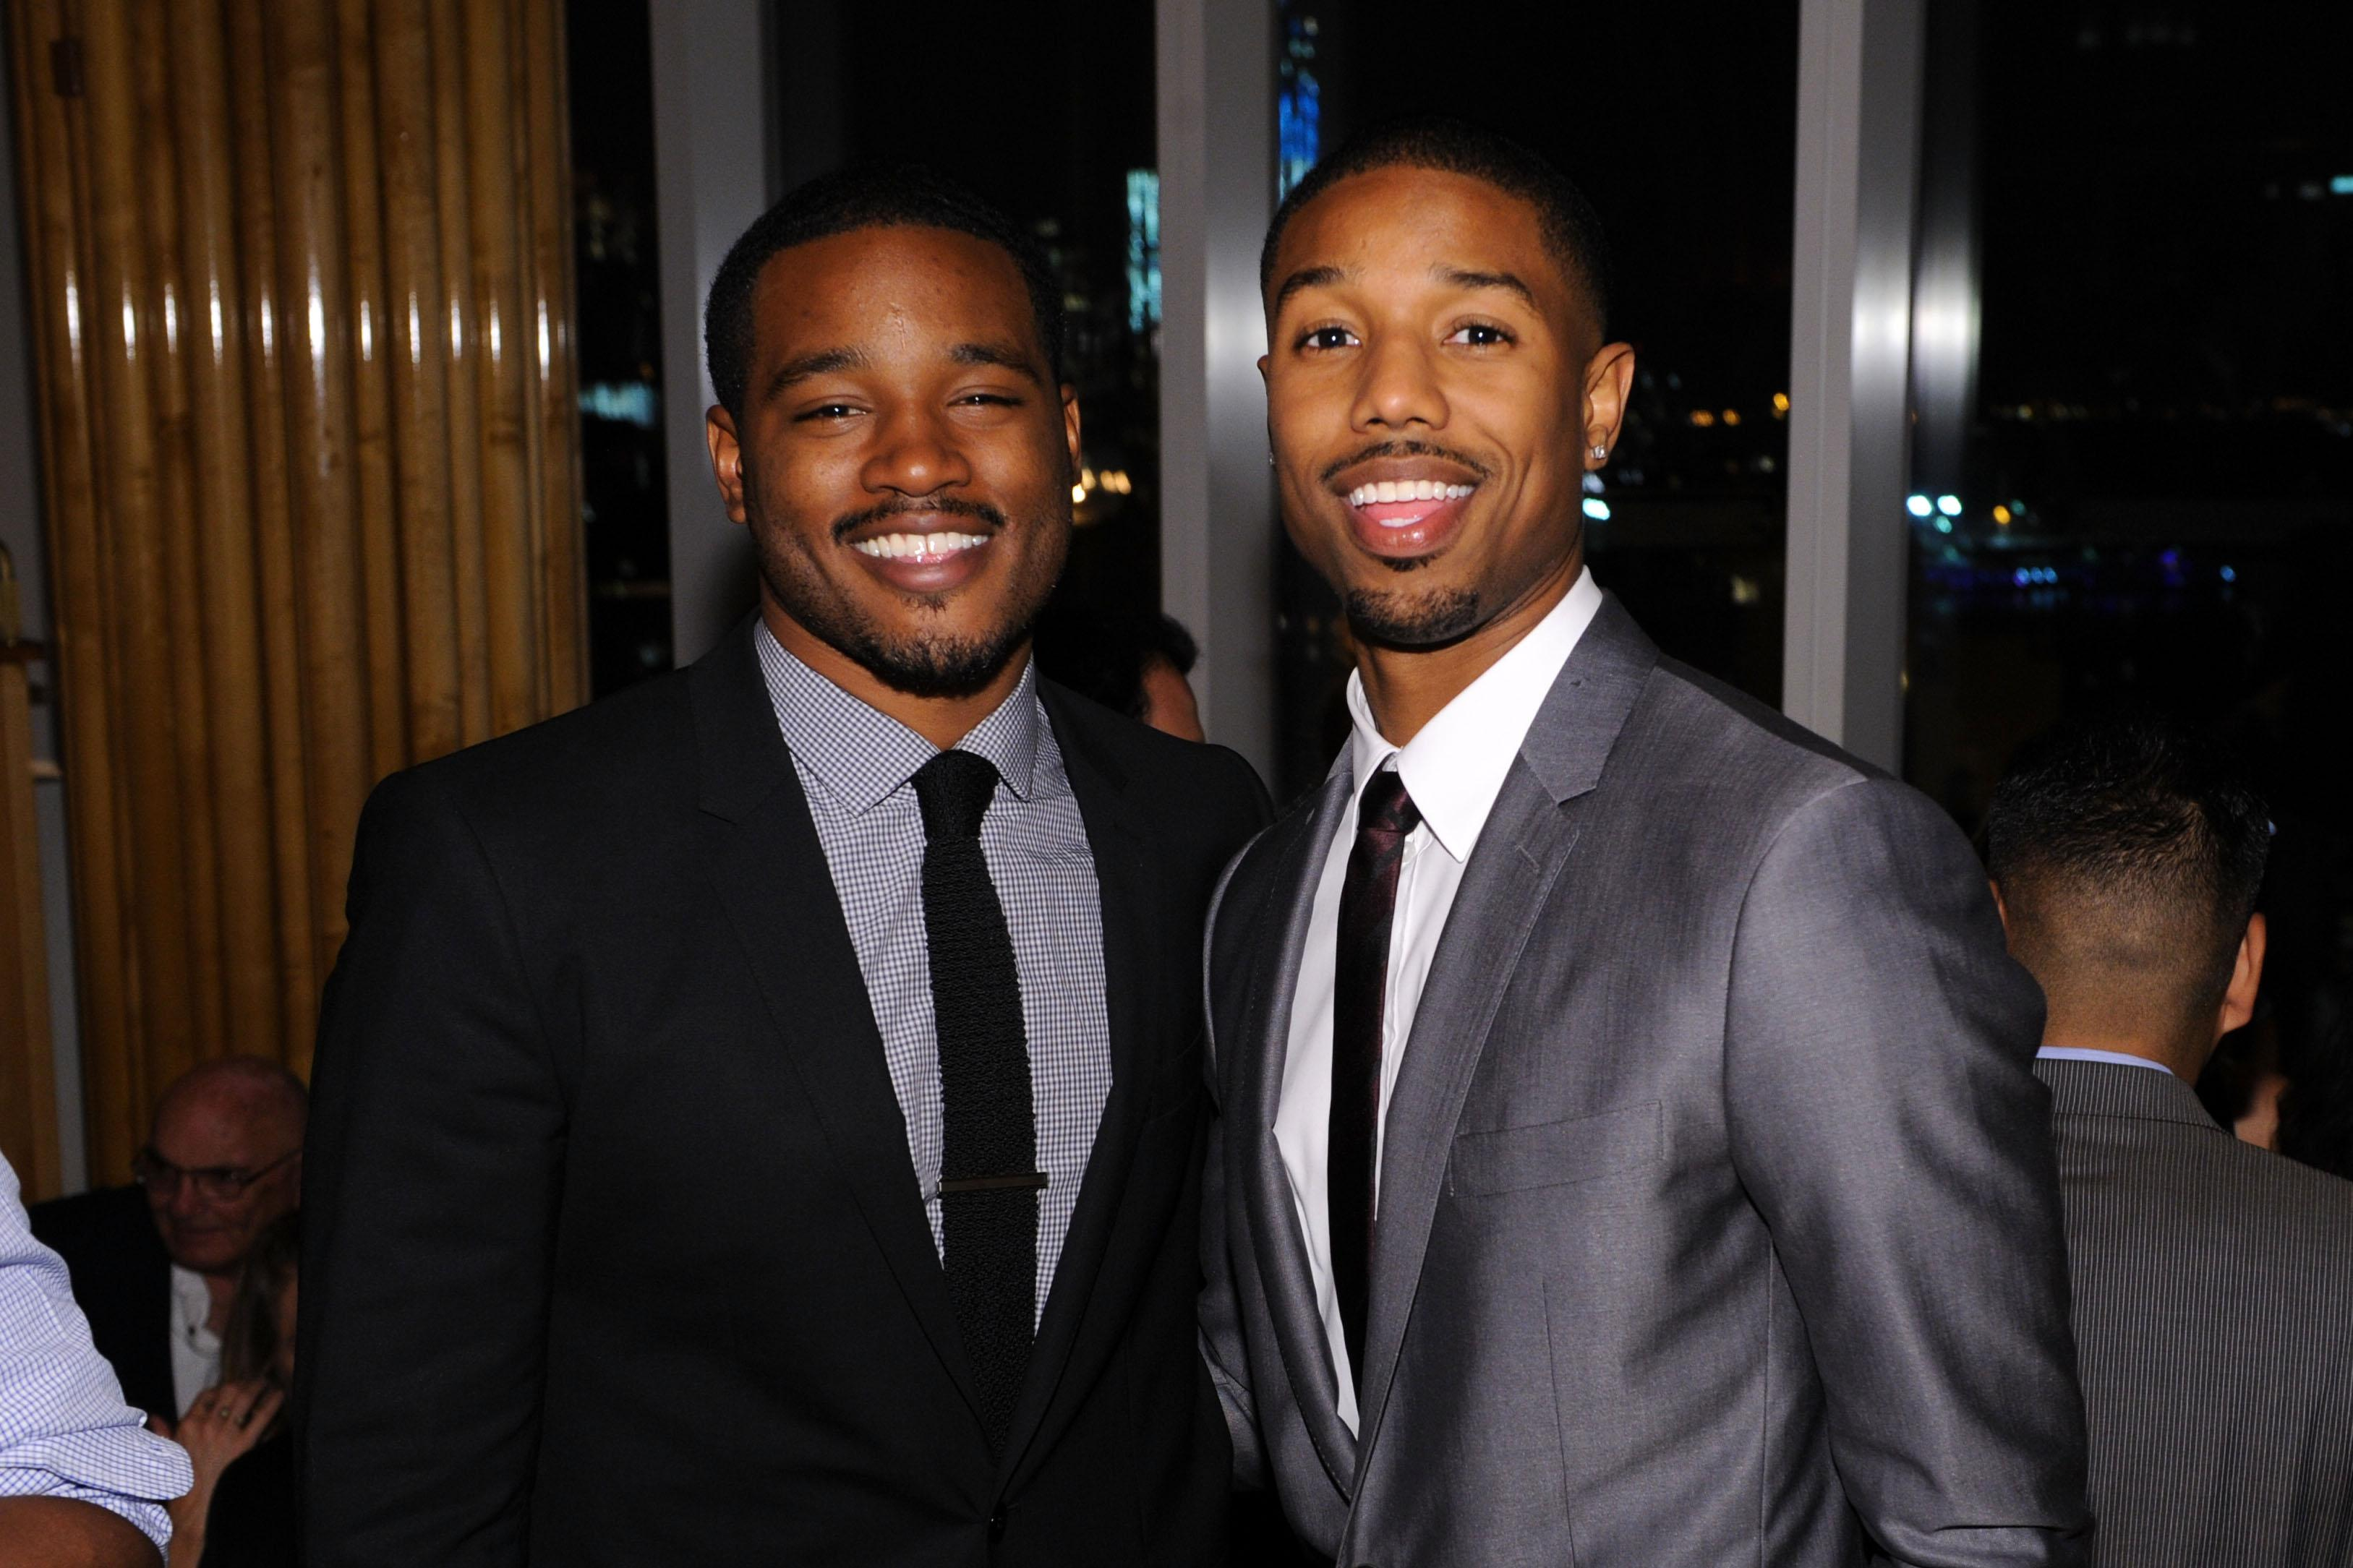 The New York Premiere Of FRUITVALE STATION, Hosted By The Weinstein Company, BET Films And CIROC Vodka.